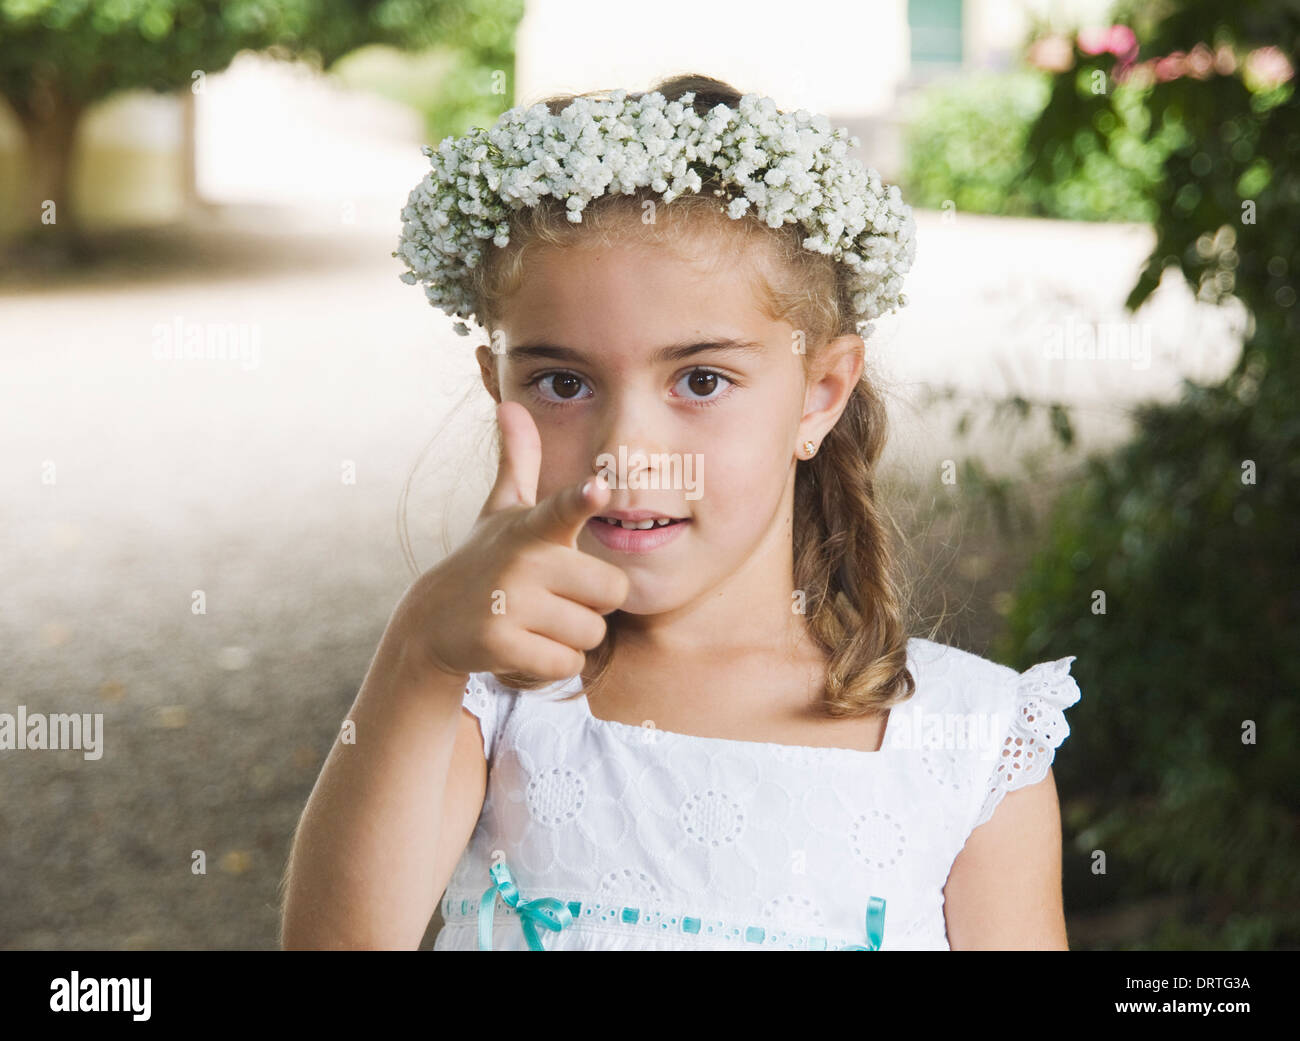 Little girl dressed for a wedding. The girl is making a hand gesture. - Stock Image